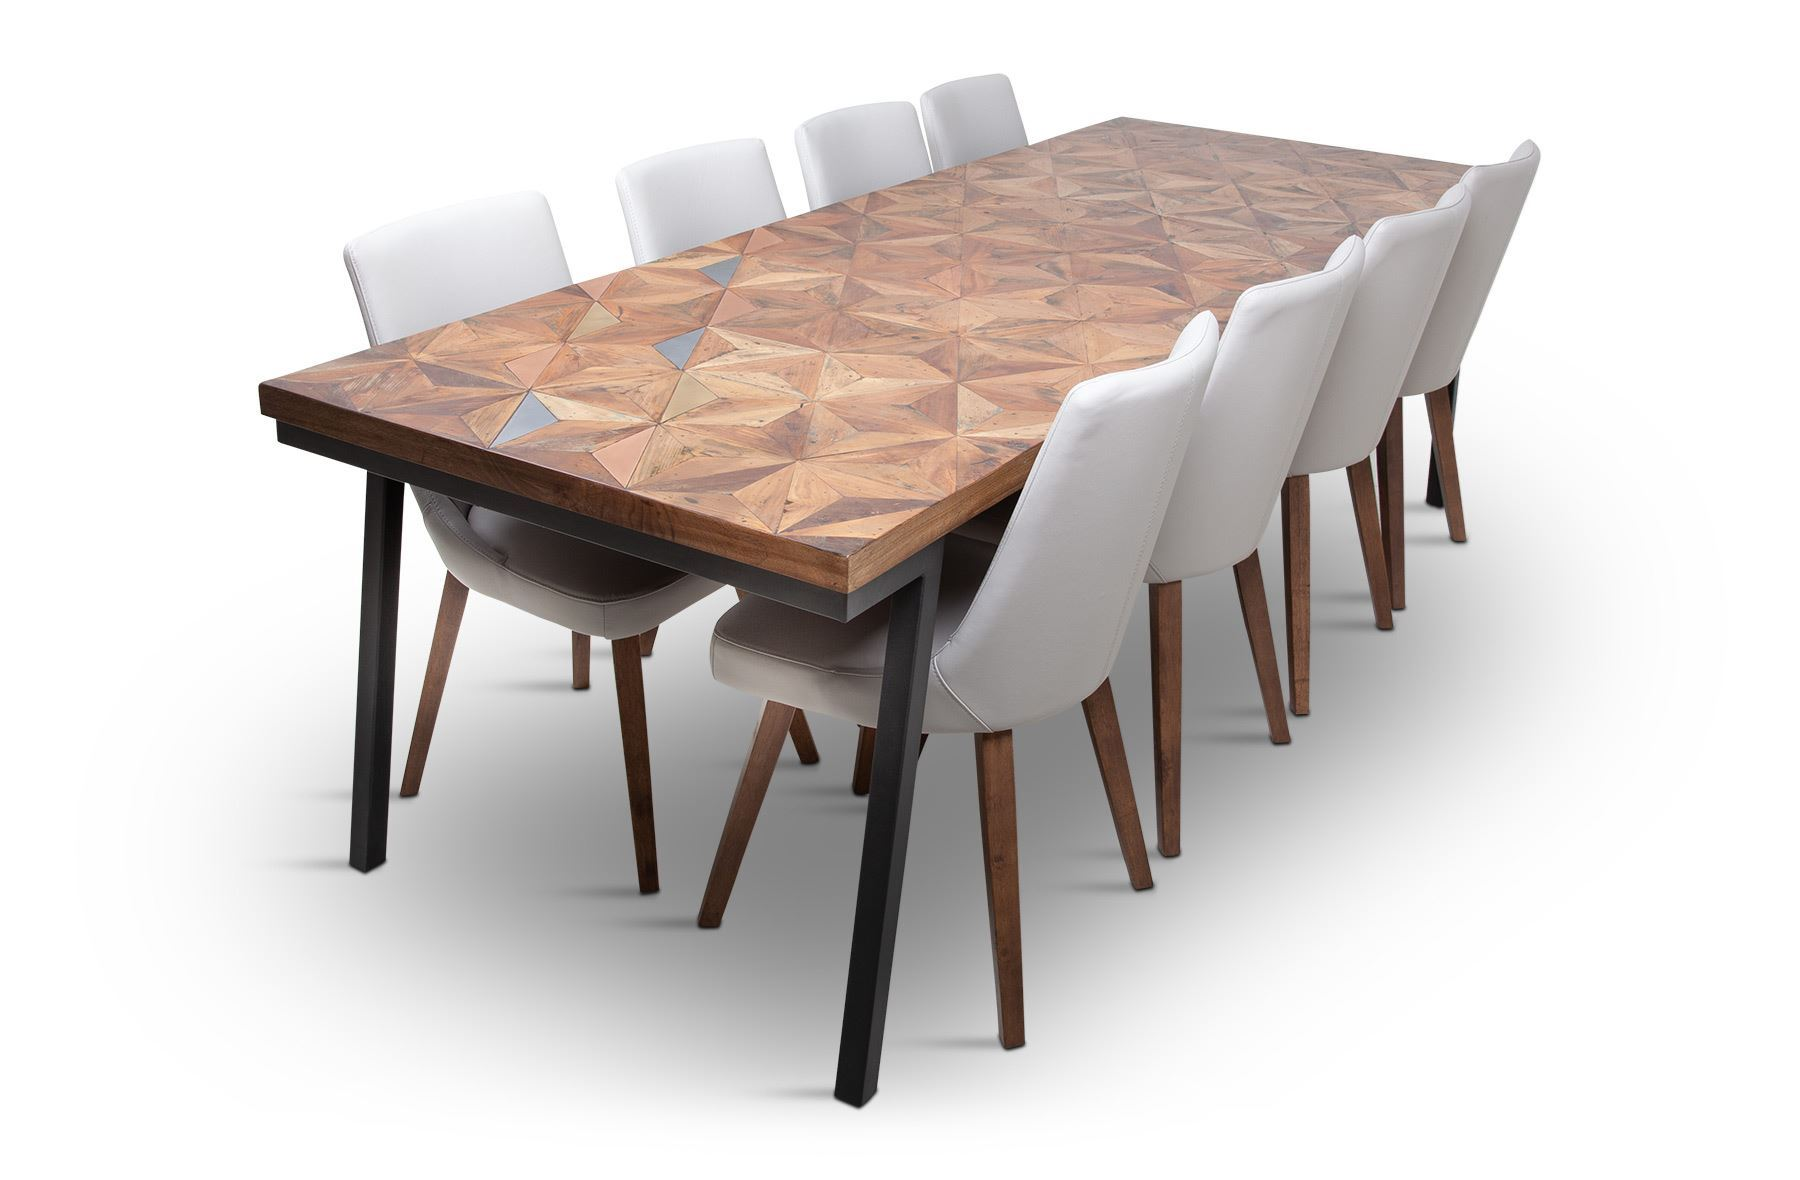 Picture Of Phoenix 2500 Dining Table With 8 Lincoln Leather Chair Beach